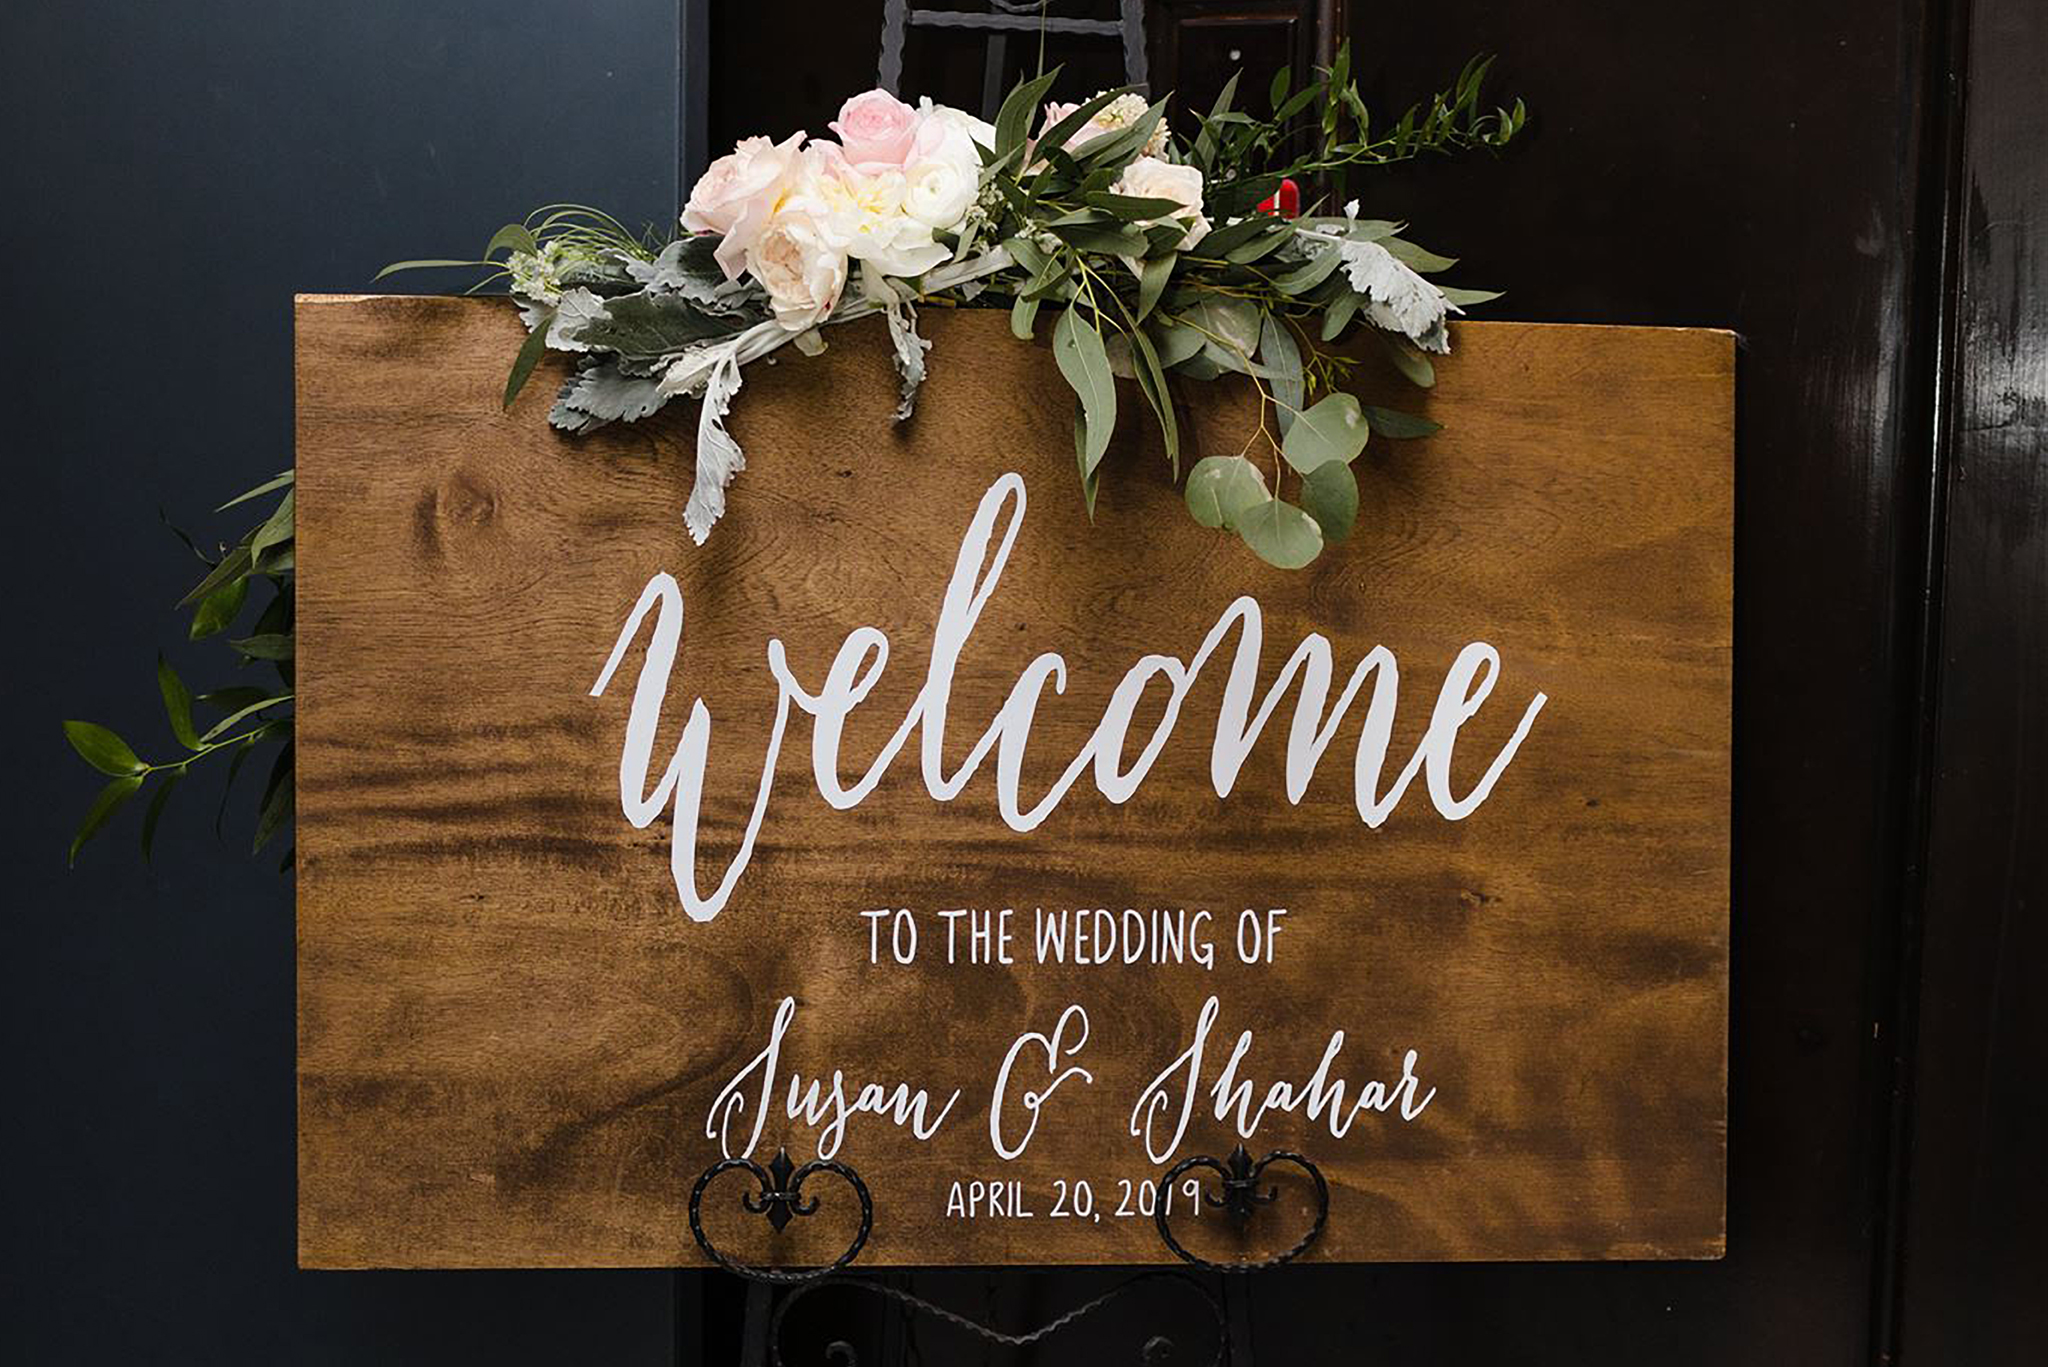 Susan-and-Shahar-wedding-sign